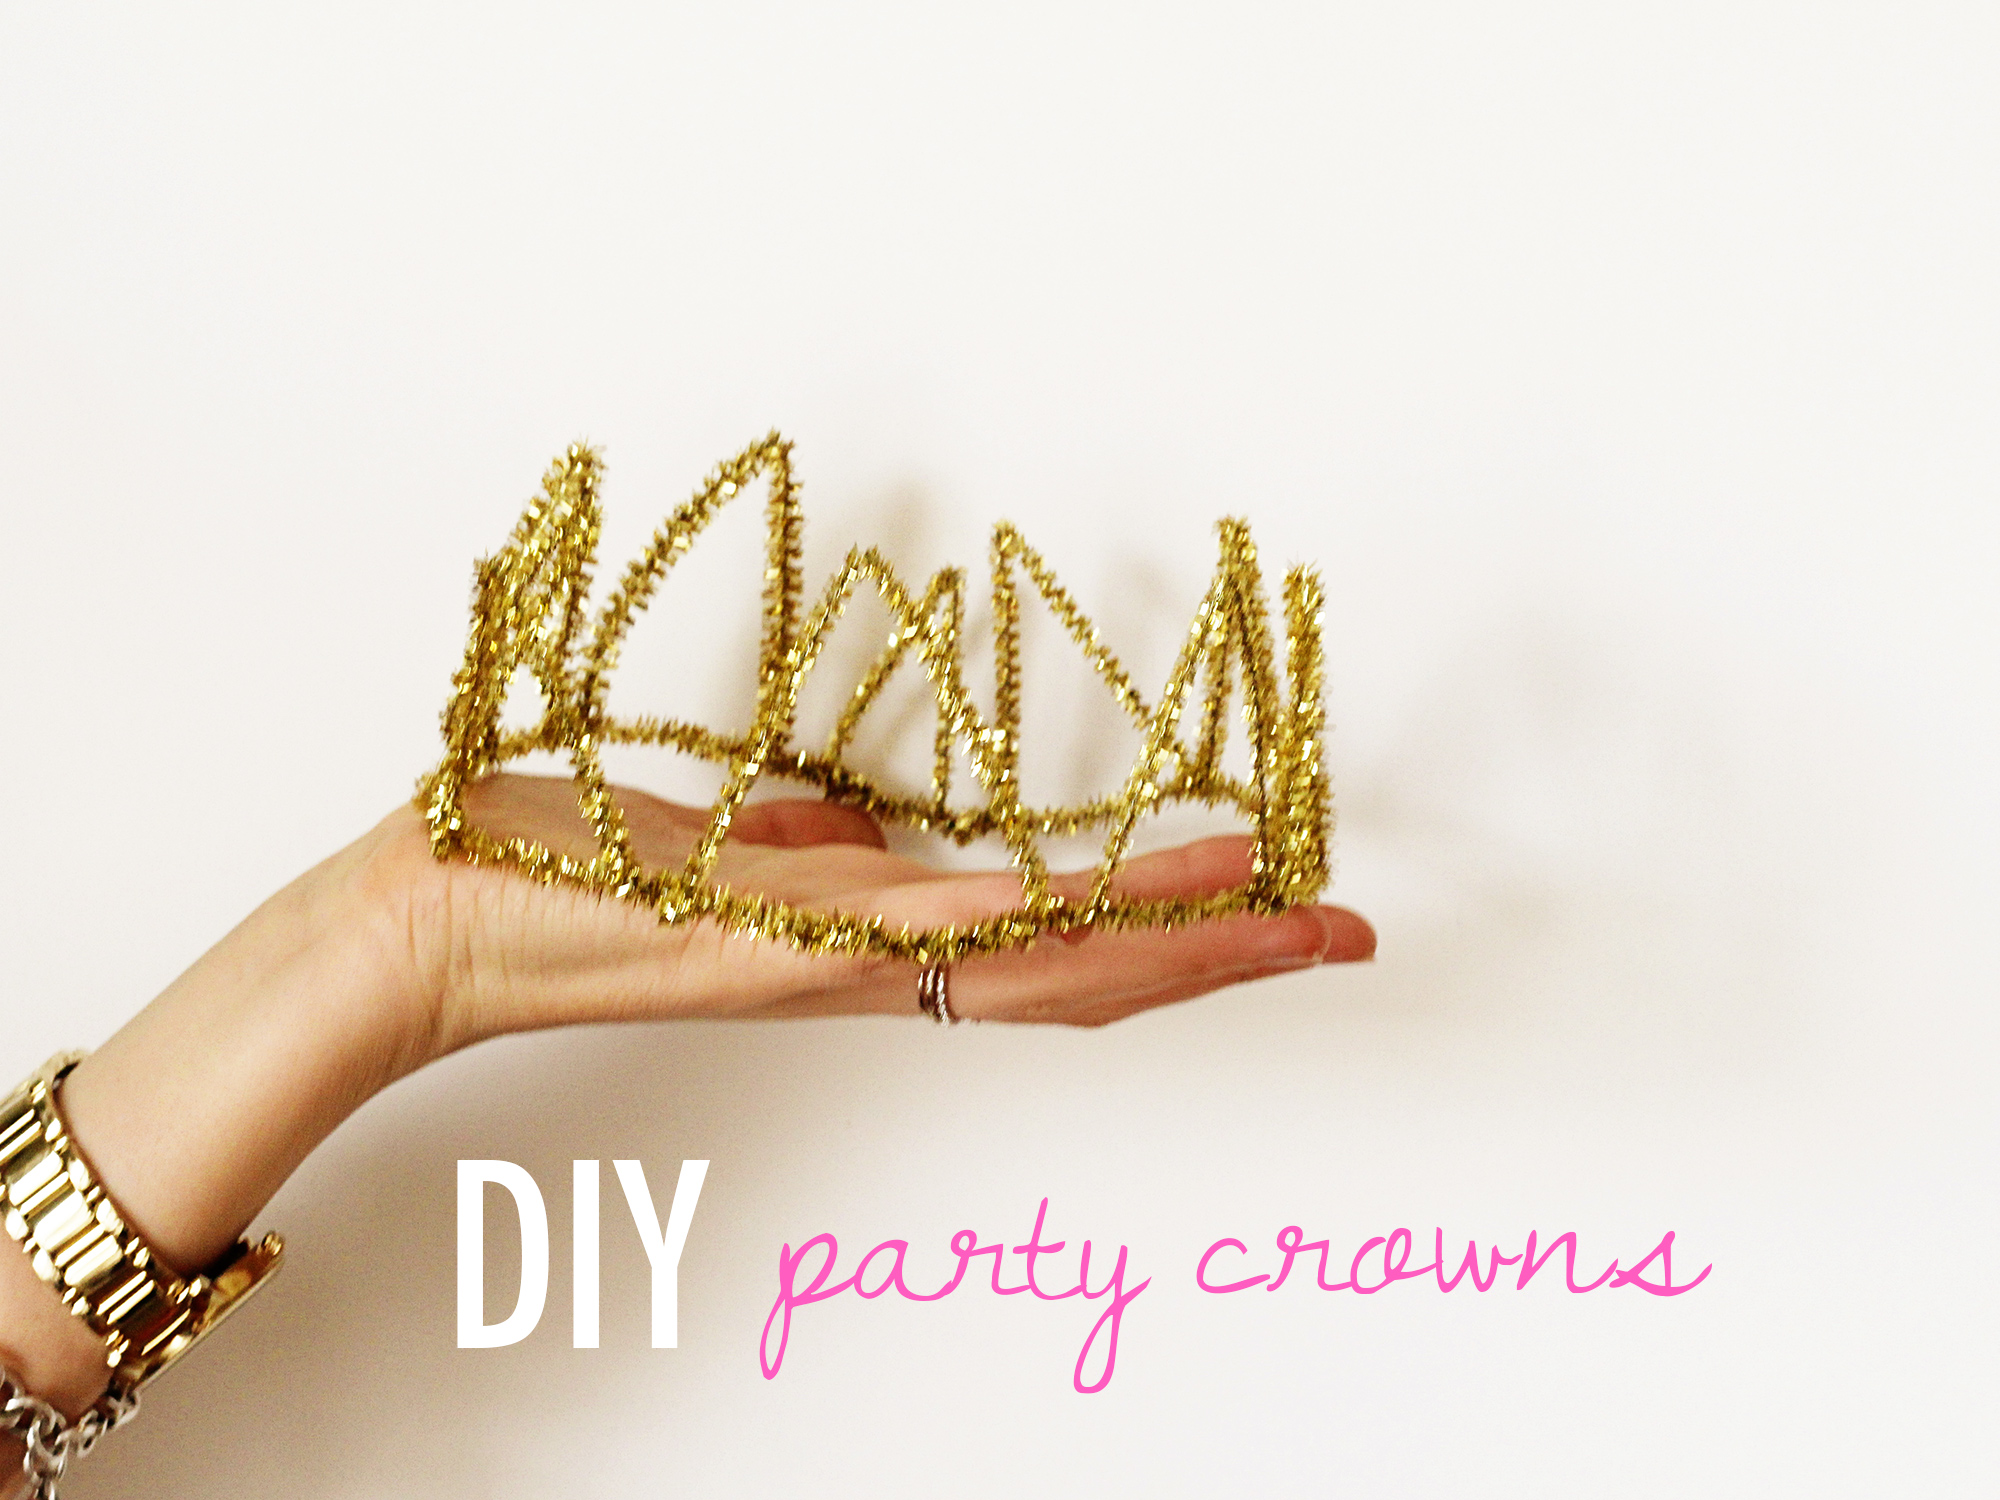 DIY Party Crowns // ssheart.com